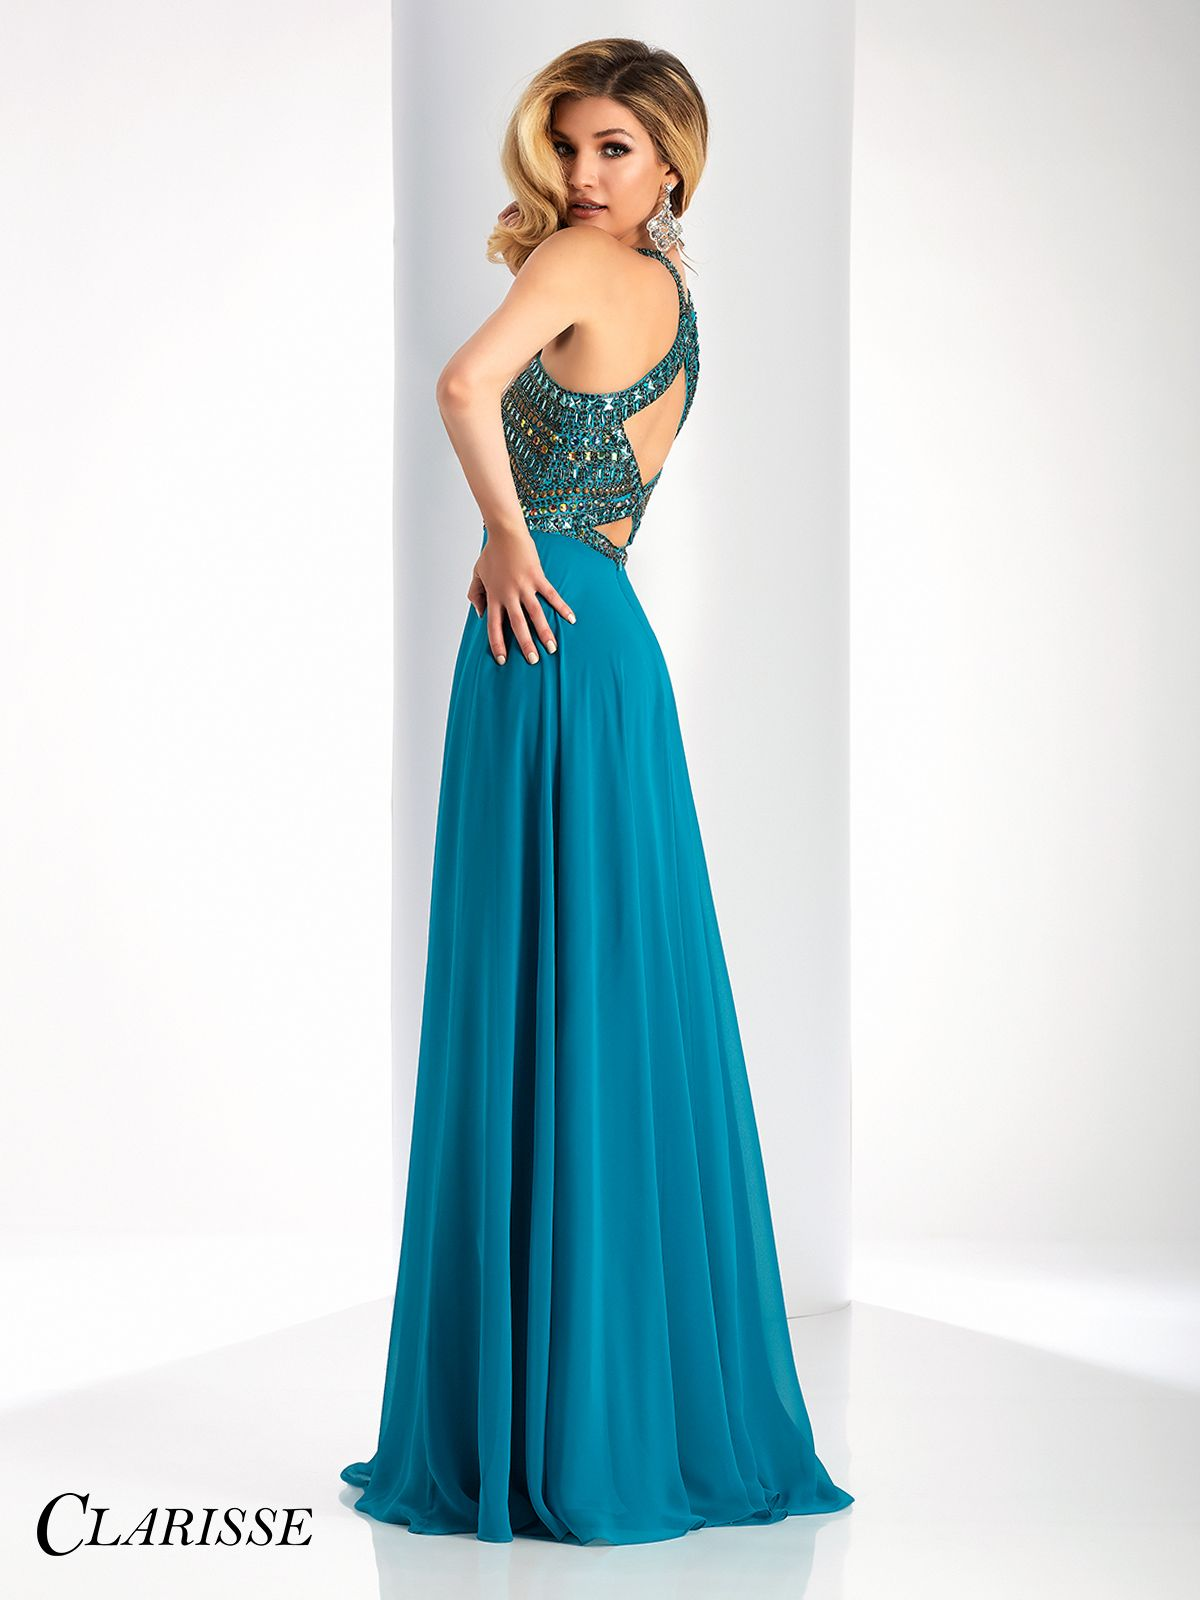 Clarisse Prom Dress 3066. Gorgeous, halter prom dress with flowing a ...